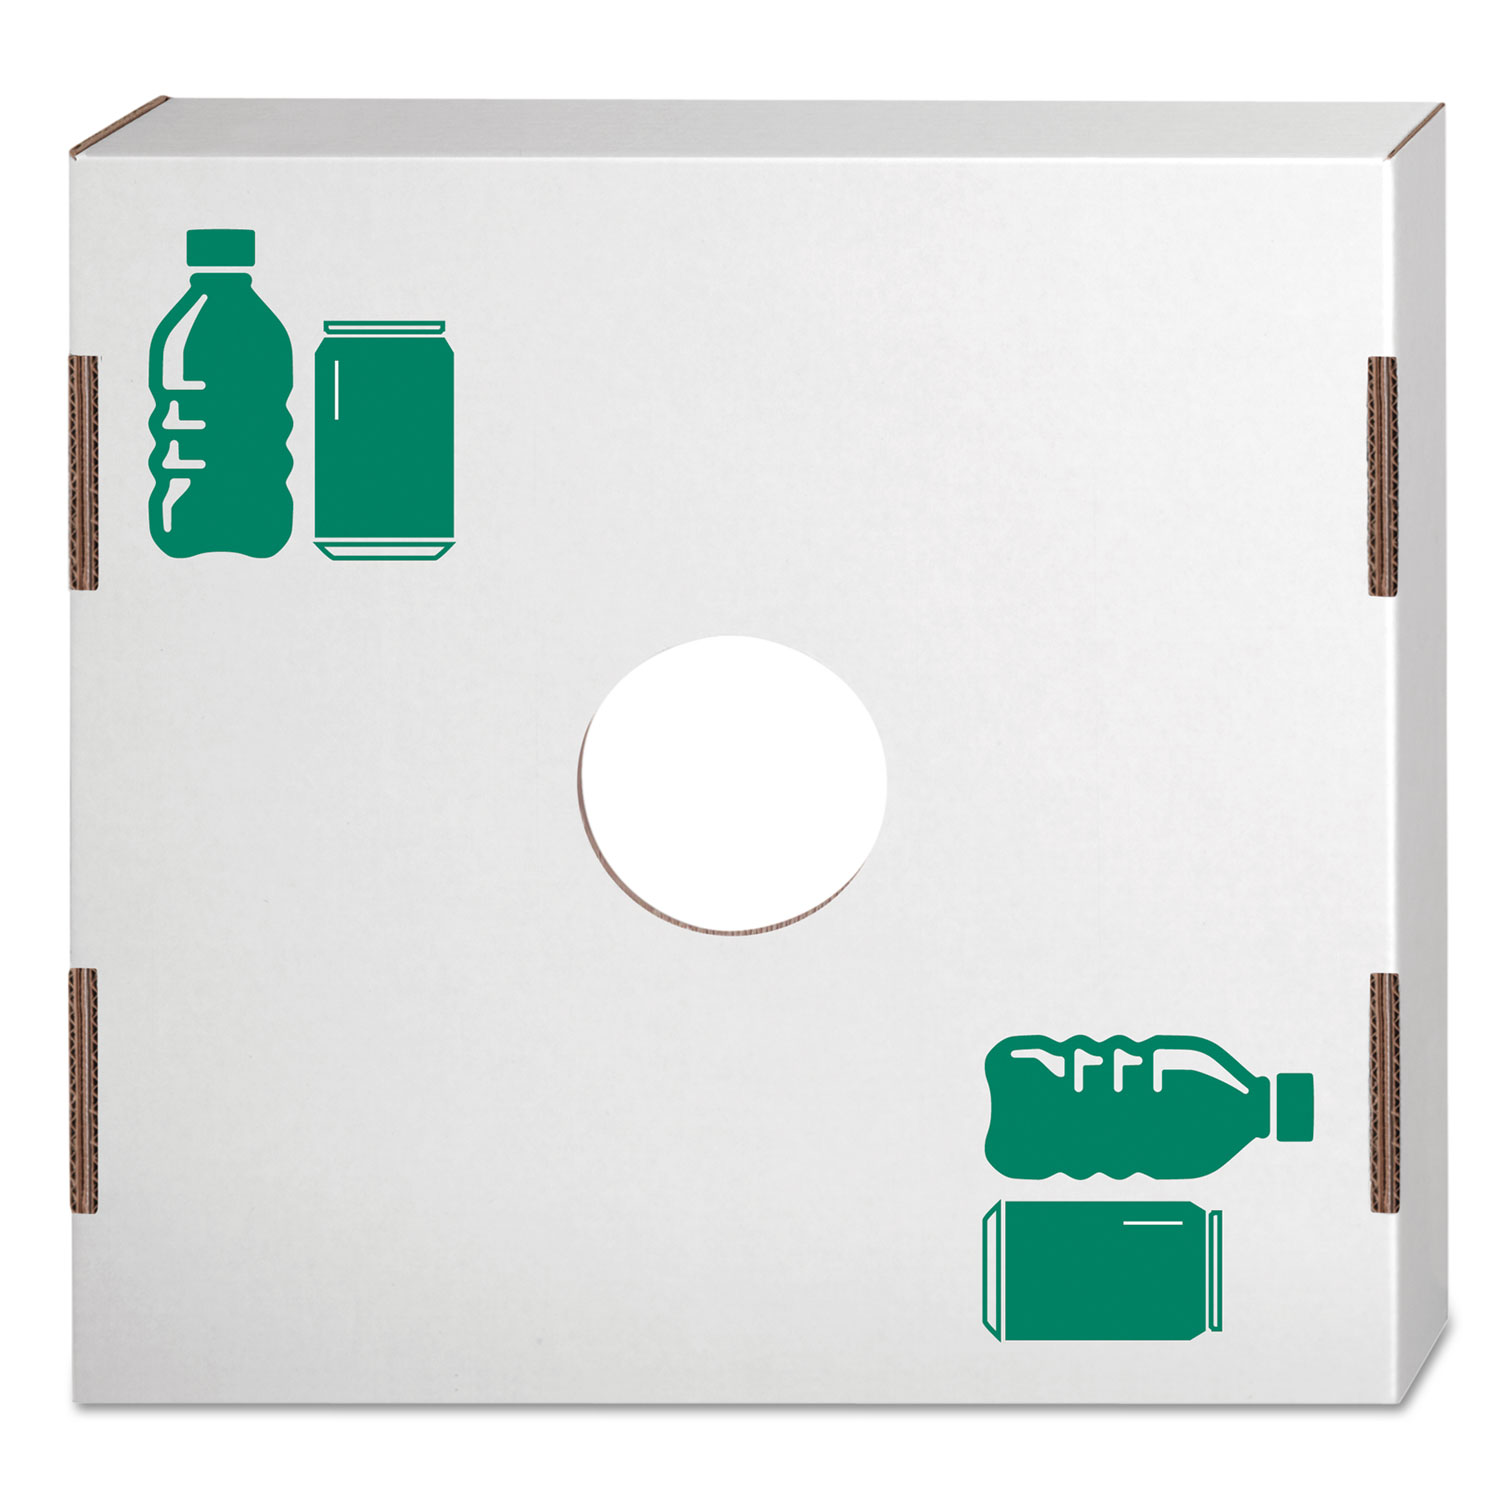 Waste and Recycling Bin Lid, Bottles and Cans, White/Green Print, 10/Carton